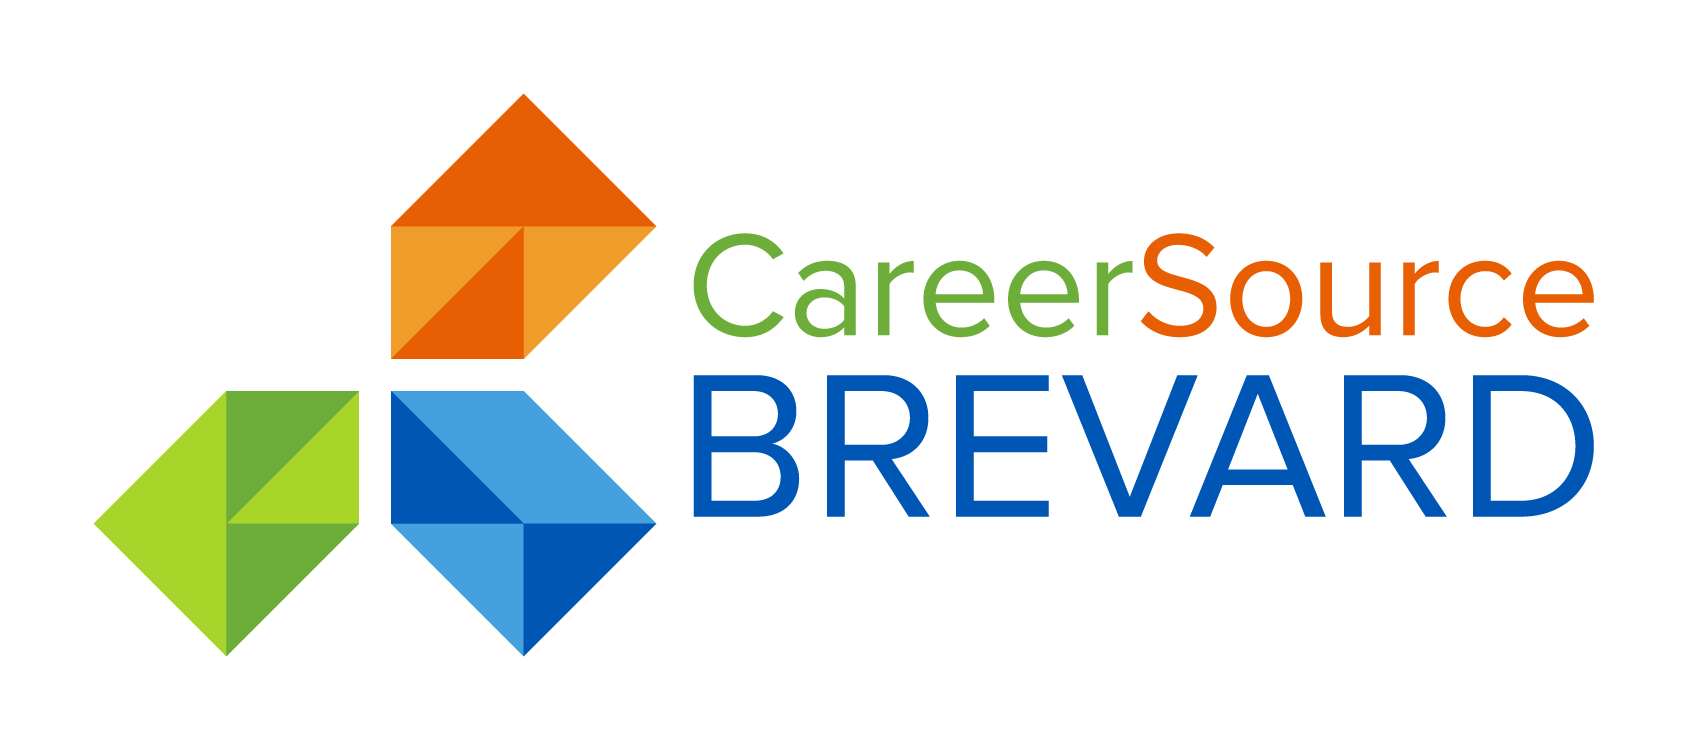 13 CareerSource Brevard_Full Color.png